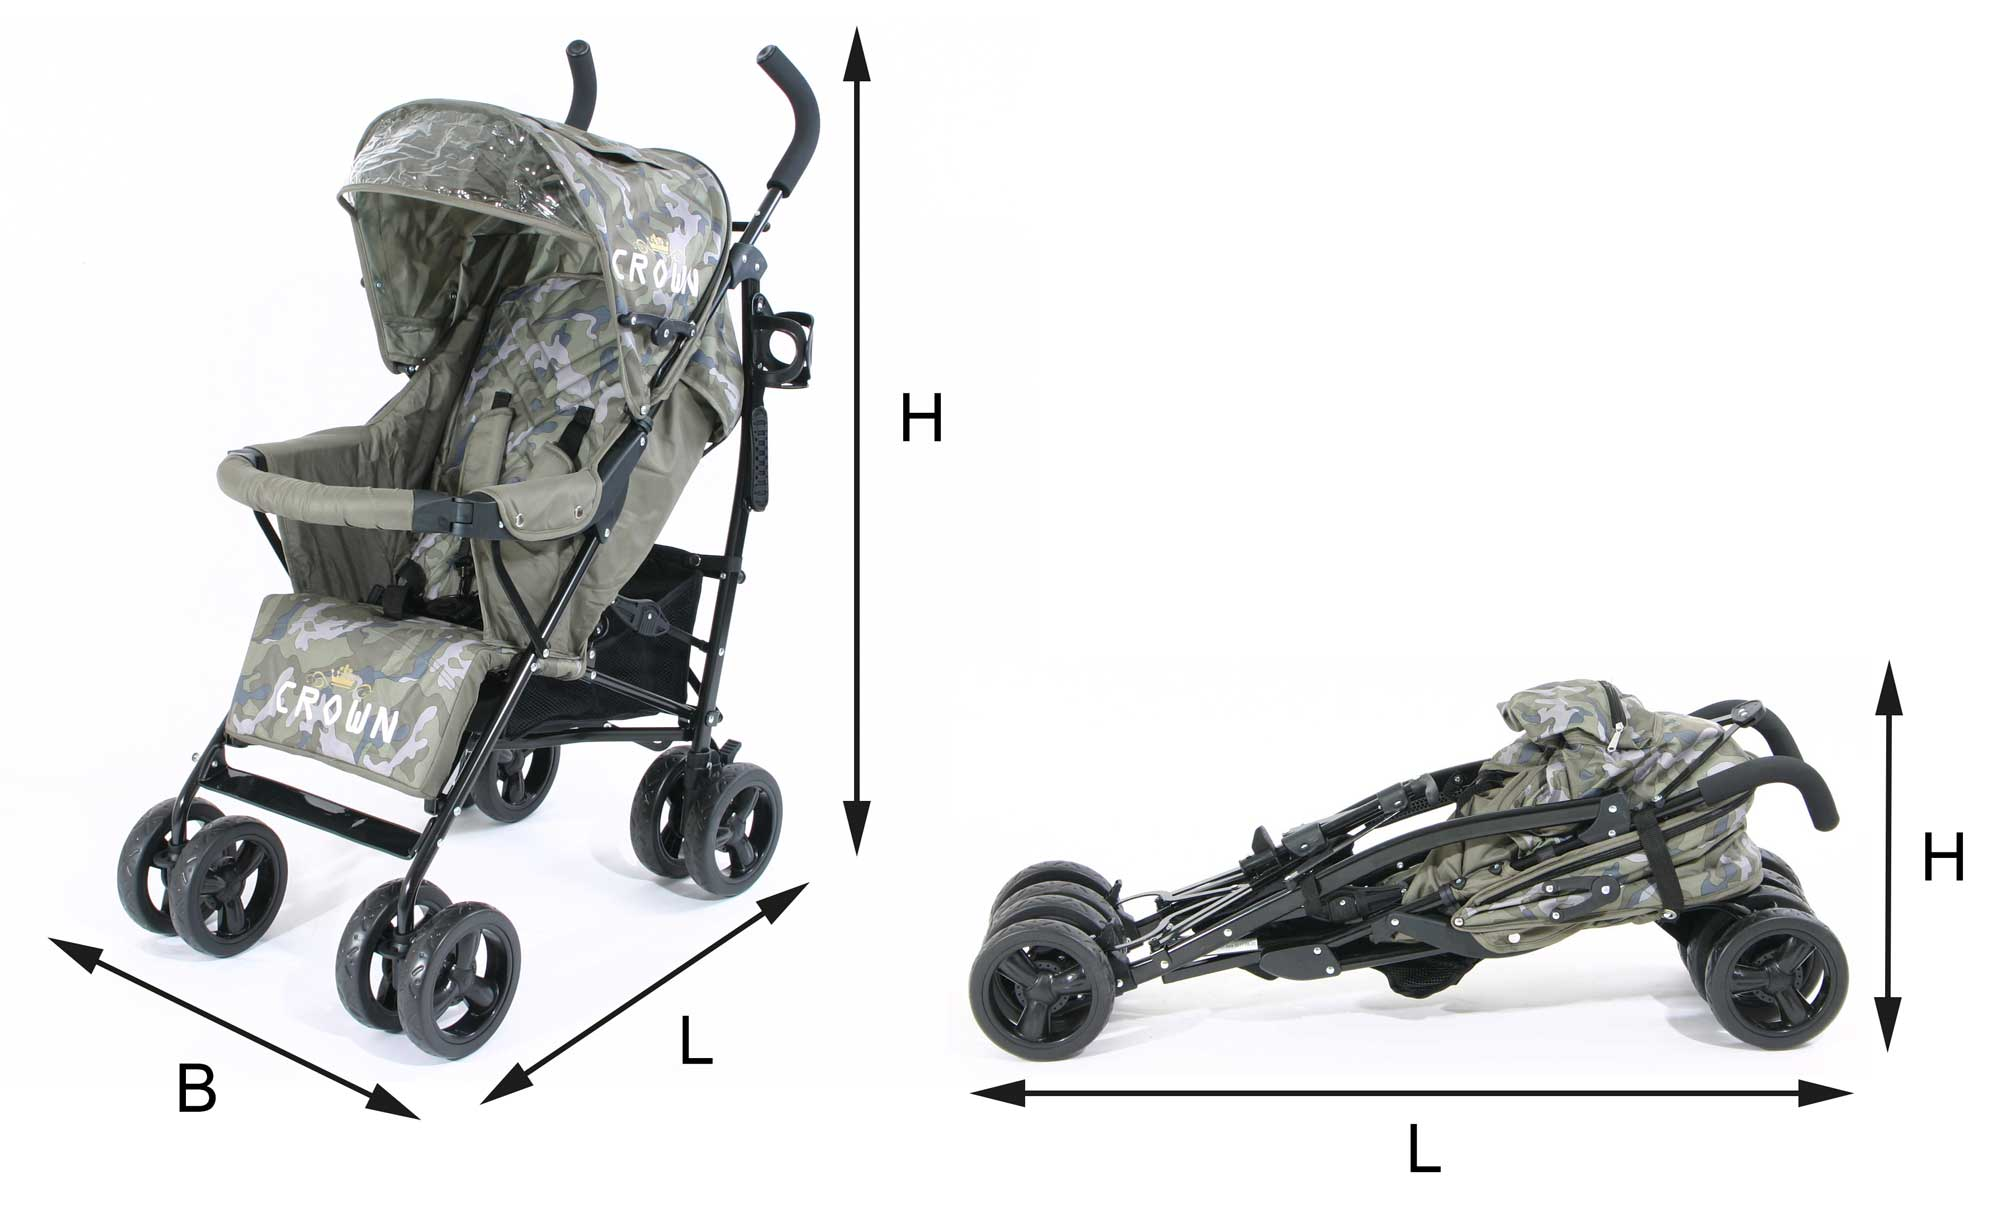 Crown Buggy Bewertung Details Zu Premium Kinderwagen Crown Buggy Kinderbuggy Karre Camouflage Design Top Qualität